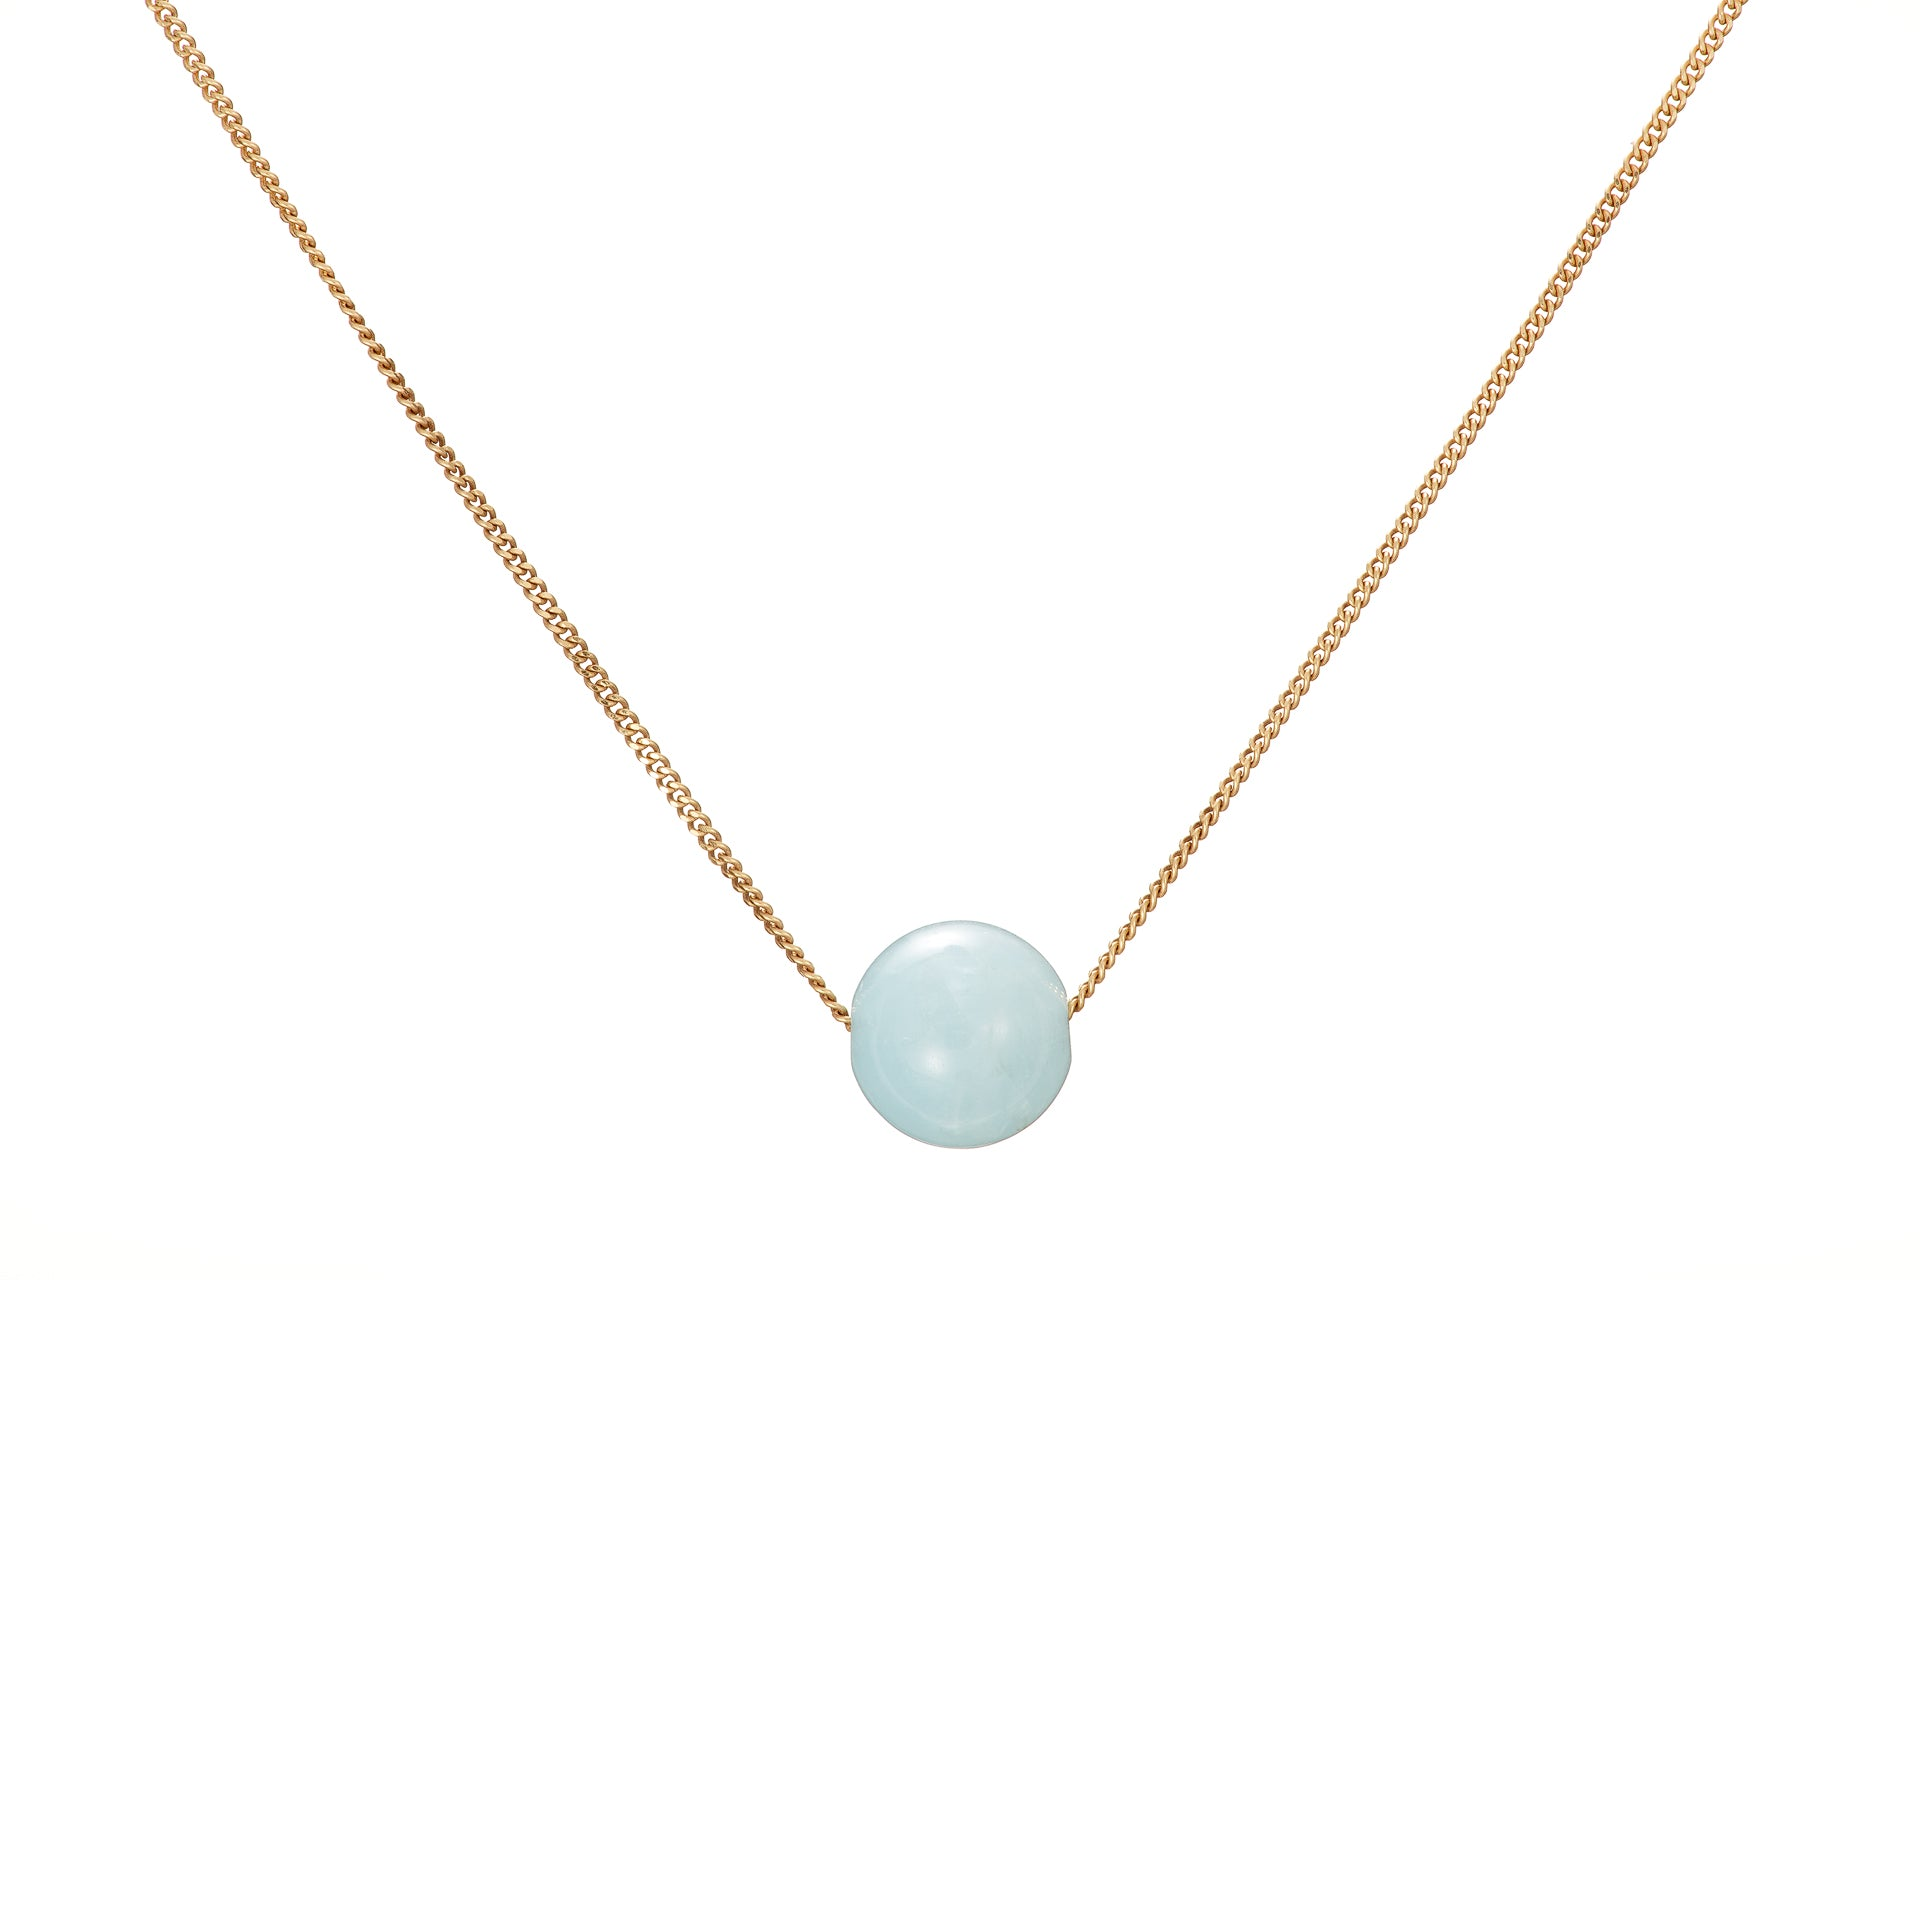 Solo Necklace - Aquamarine (Blue Beryl)